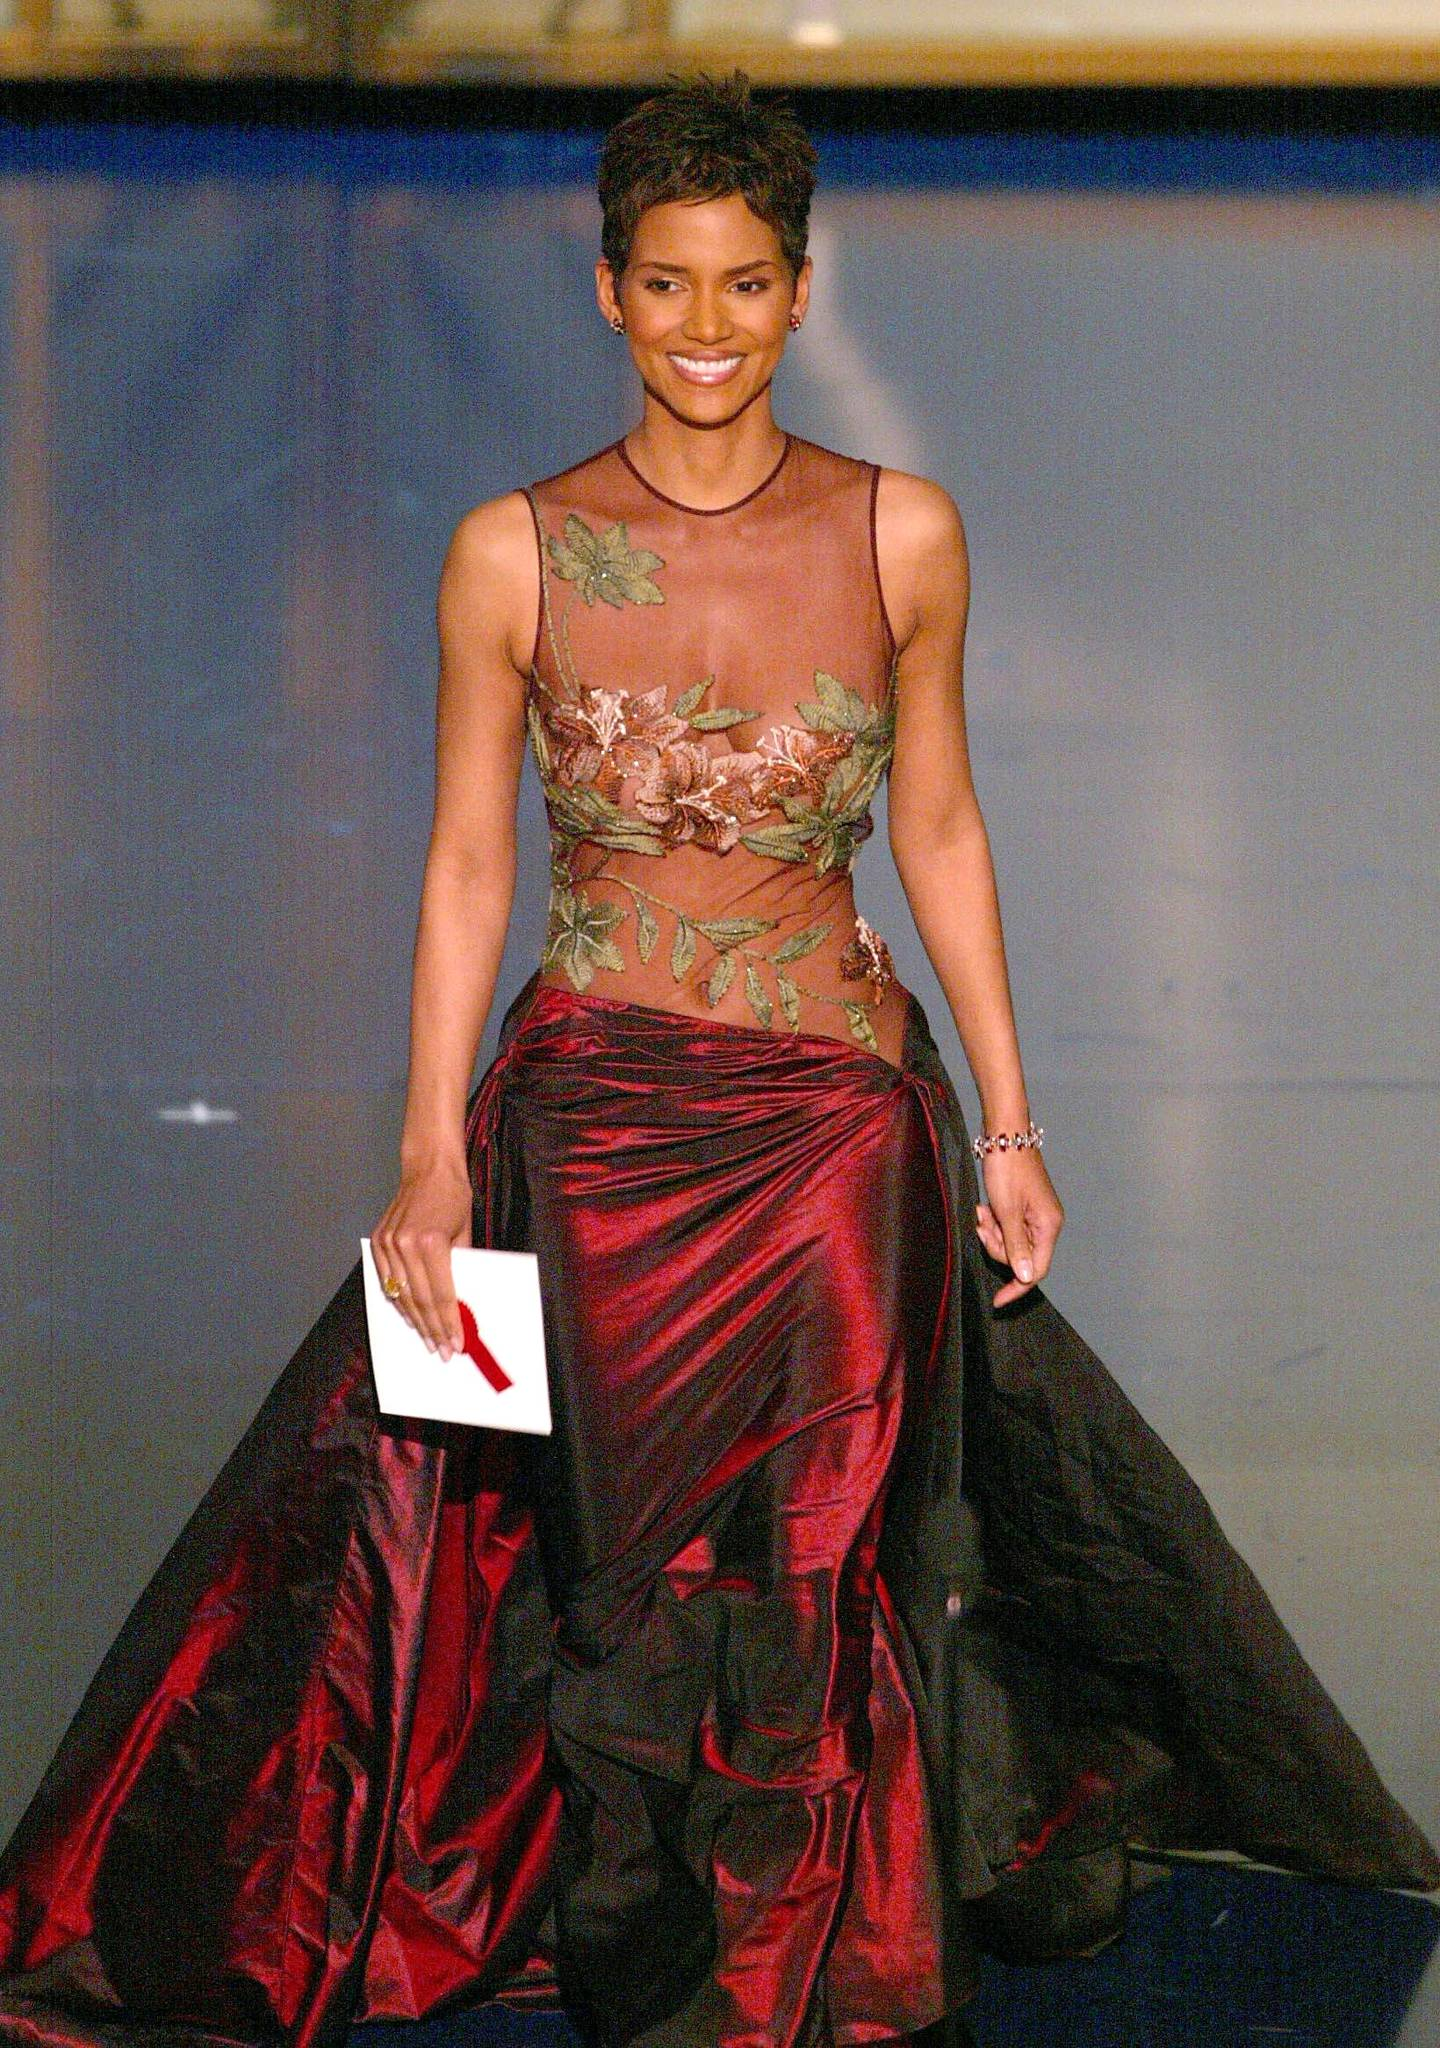 Best Actress nominee Halle Berry prepares to present the Oscar for achievement in Sound during the 74th Academy Awards at the Kodak Theatre in Hollywood, CA, 24 March 2002.   AFP PHOTO/TIMOTHY A. CLARY (Photo by TIMOTHY A. CLARY / AFP)